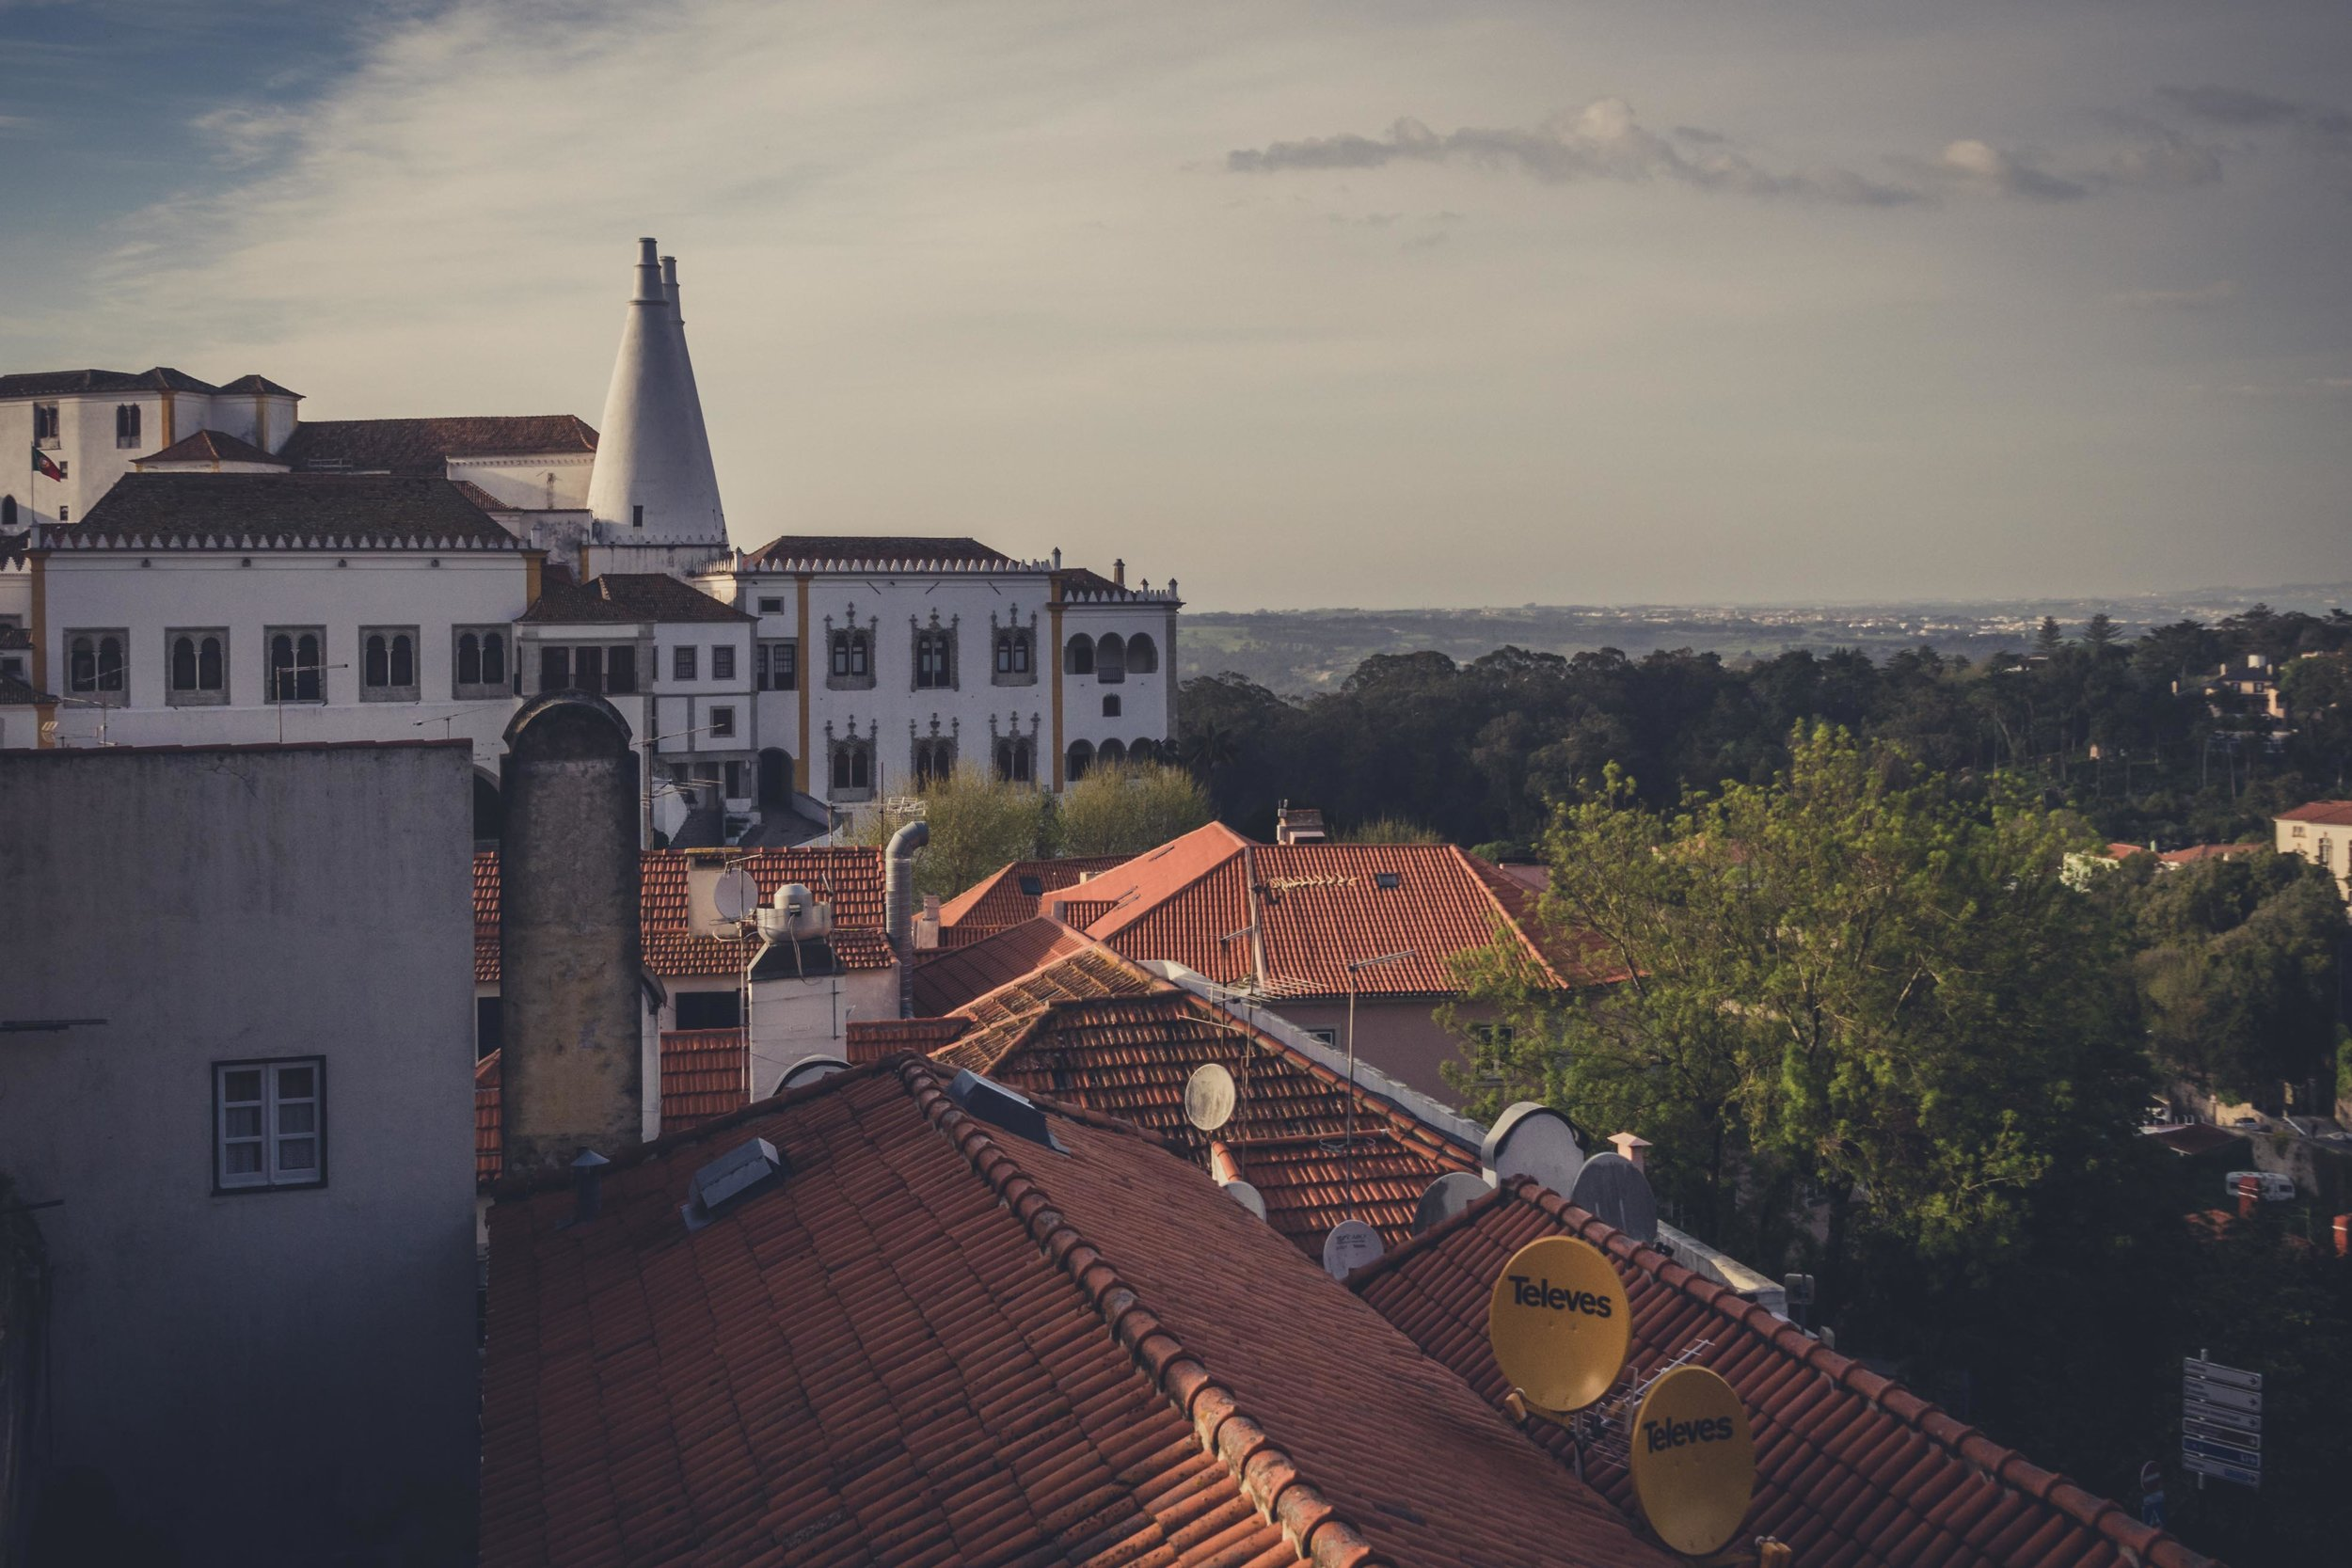 Portugal. Travel. Sintra. Sunshine. Hotel. History. view. room with a view. pena palace.  palace. town. old town. castle. castelo dos mouros. bar view ..jpg